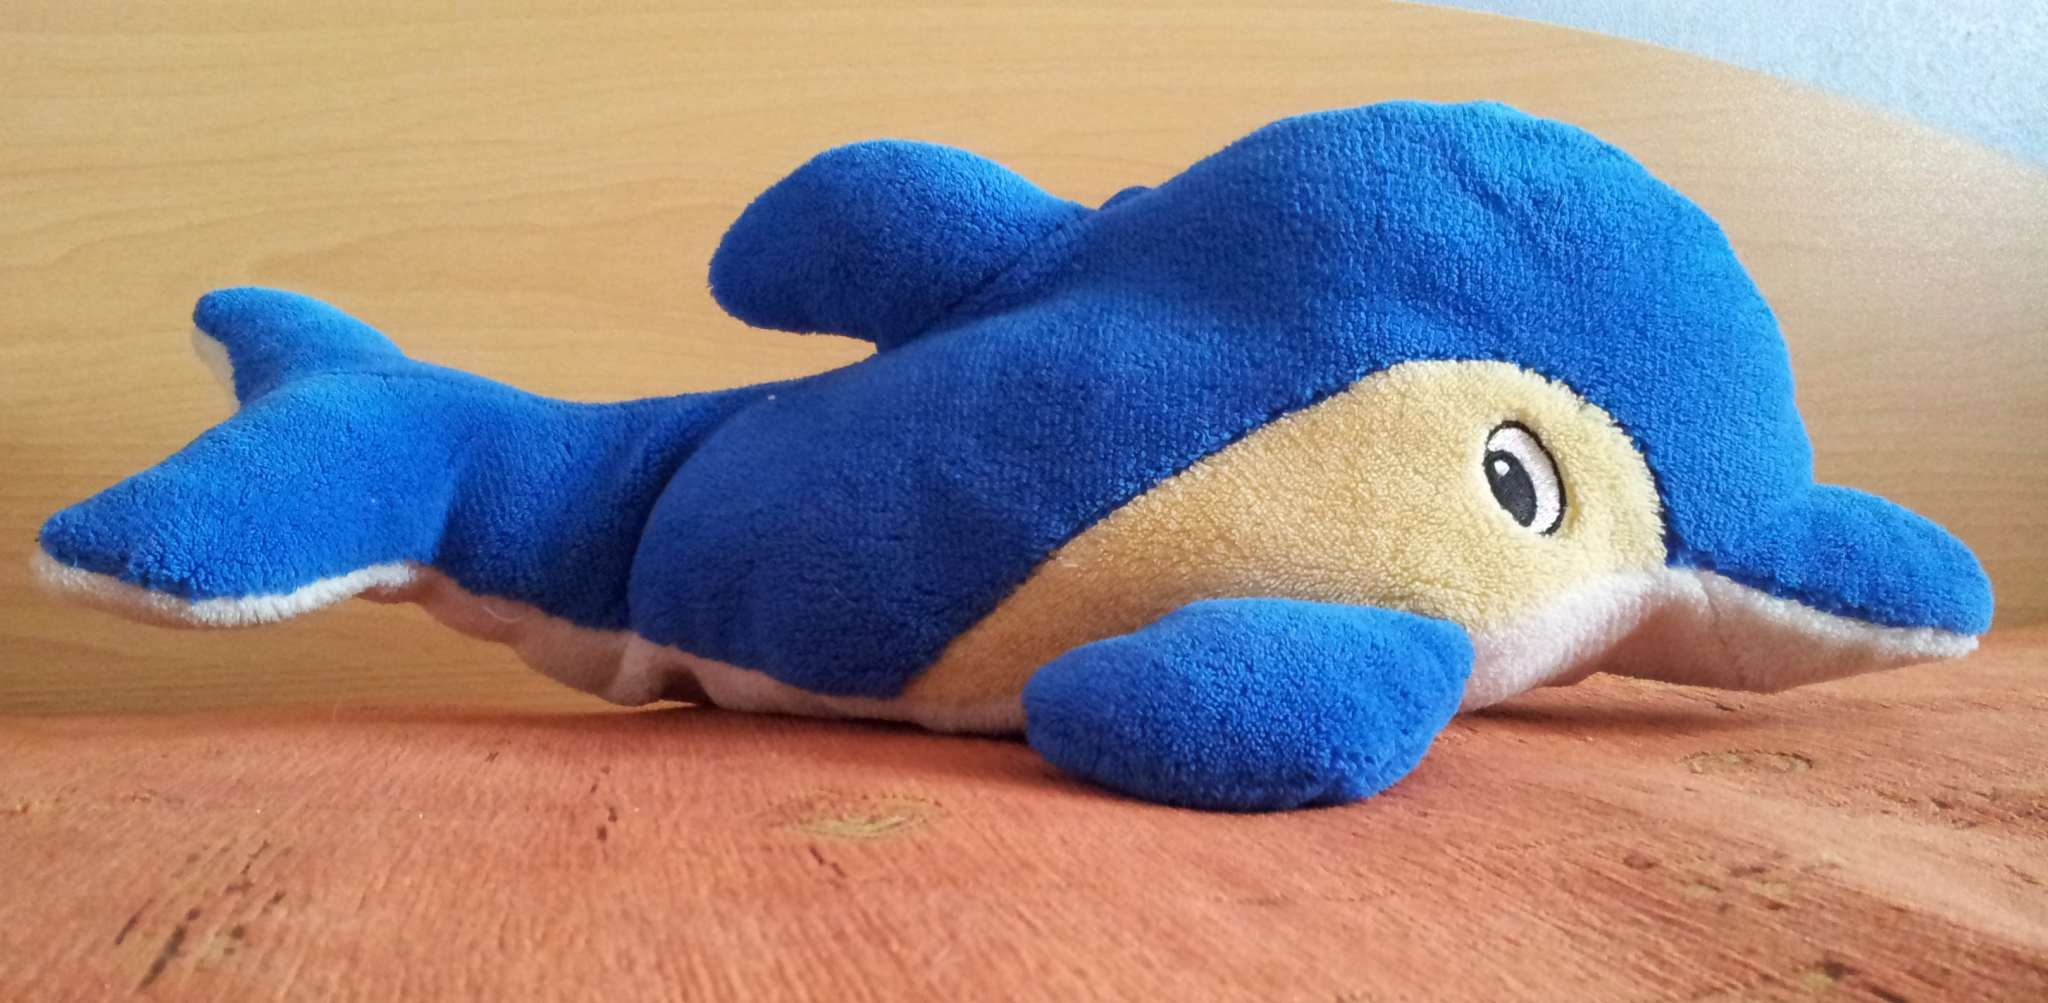 With Embroidering You Can Fill Areas Too For Example The Eyes On This  Dolphin They Are Embroidered You Can Do This With A Simple Straight  Stitch That